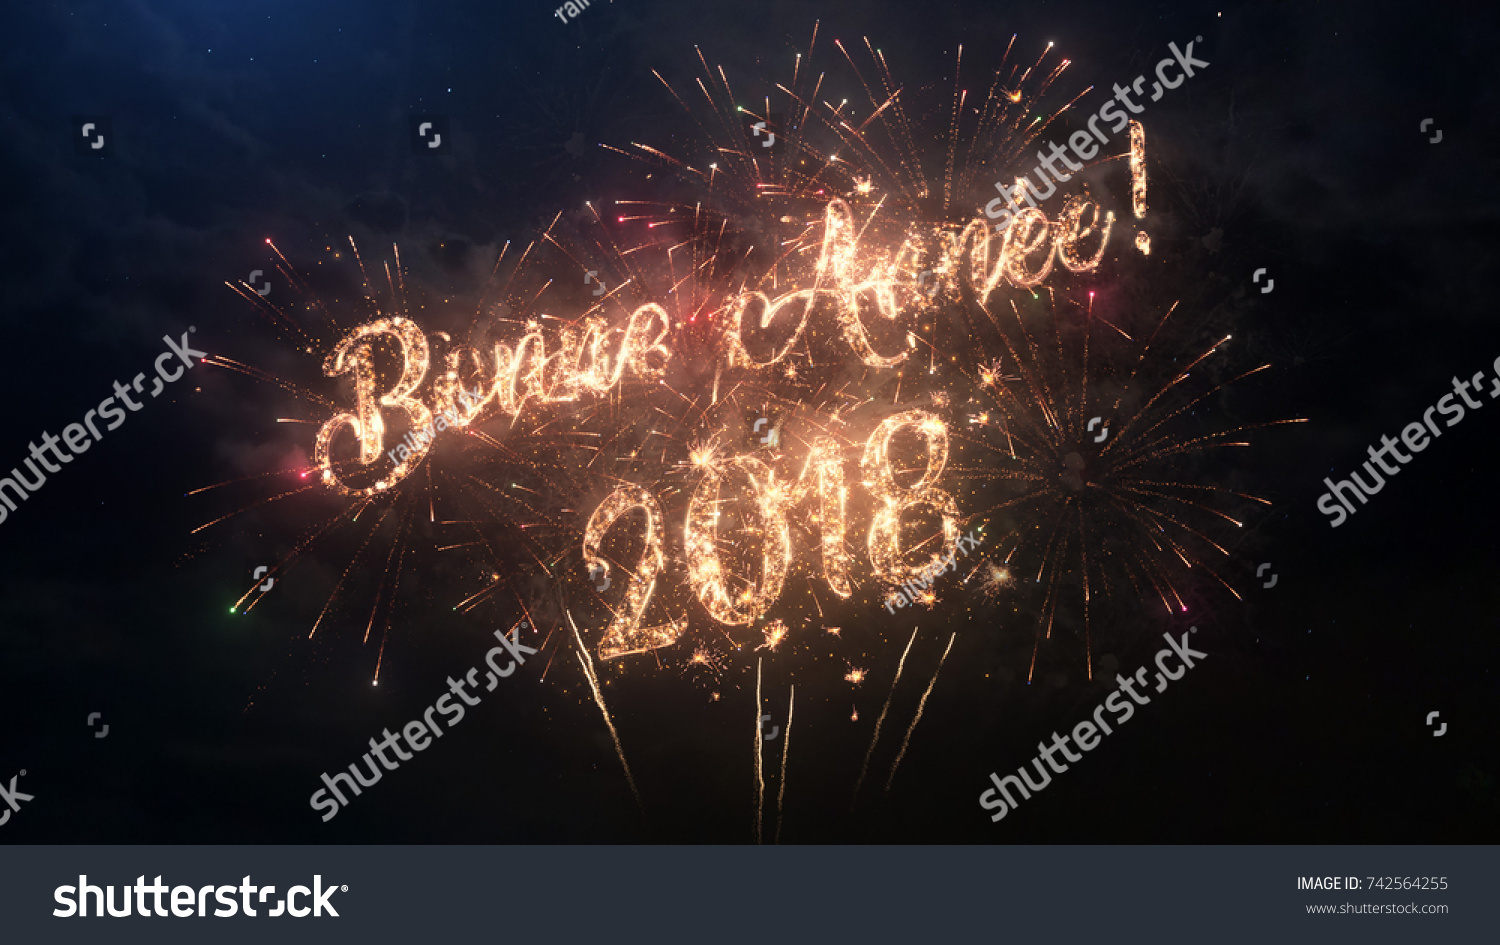 2018 happy new year greeting text in french with particles and sparks on black night sky